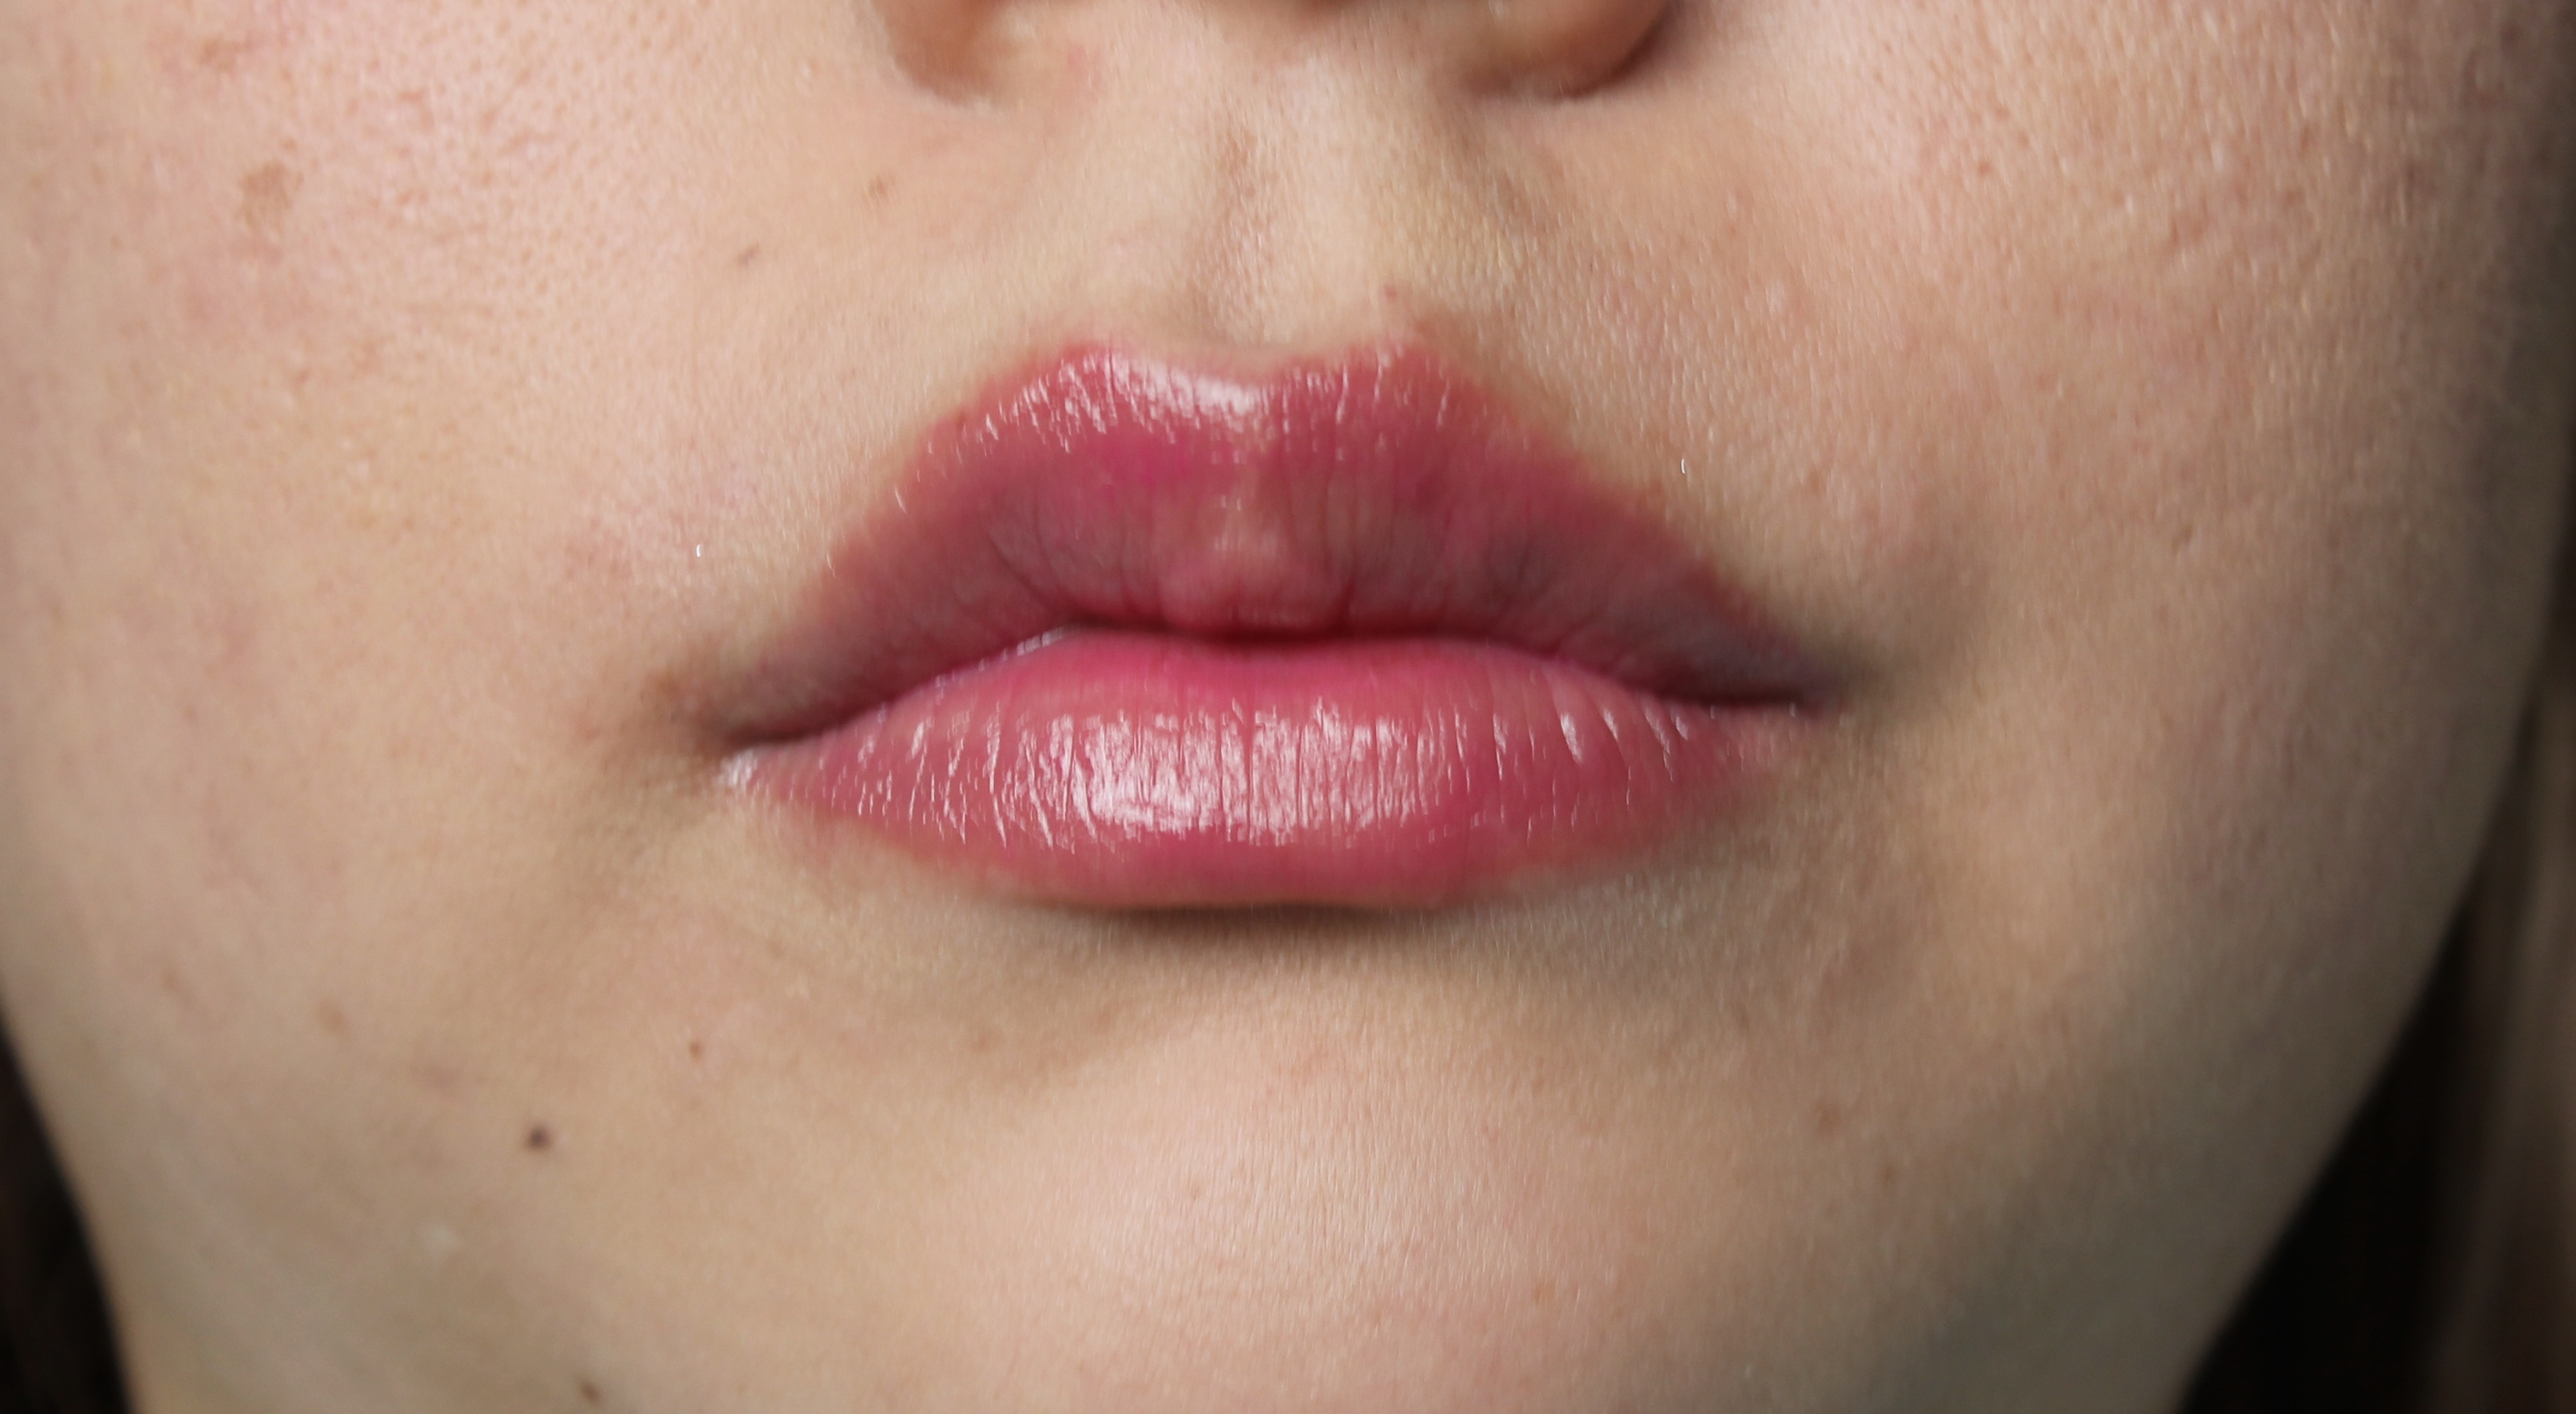 Tinted LIp Balm on Lips